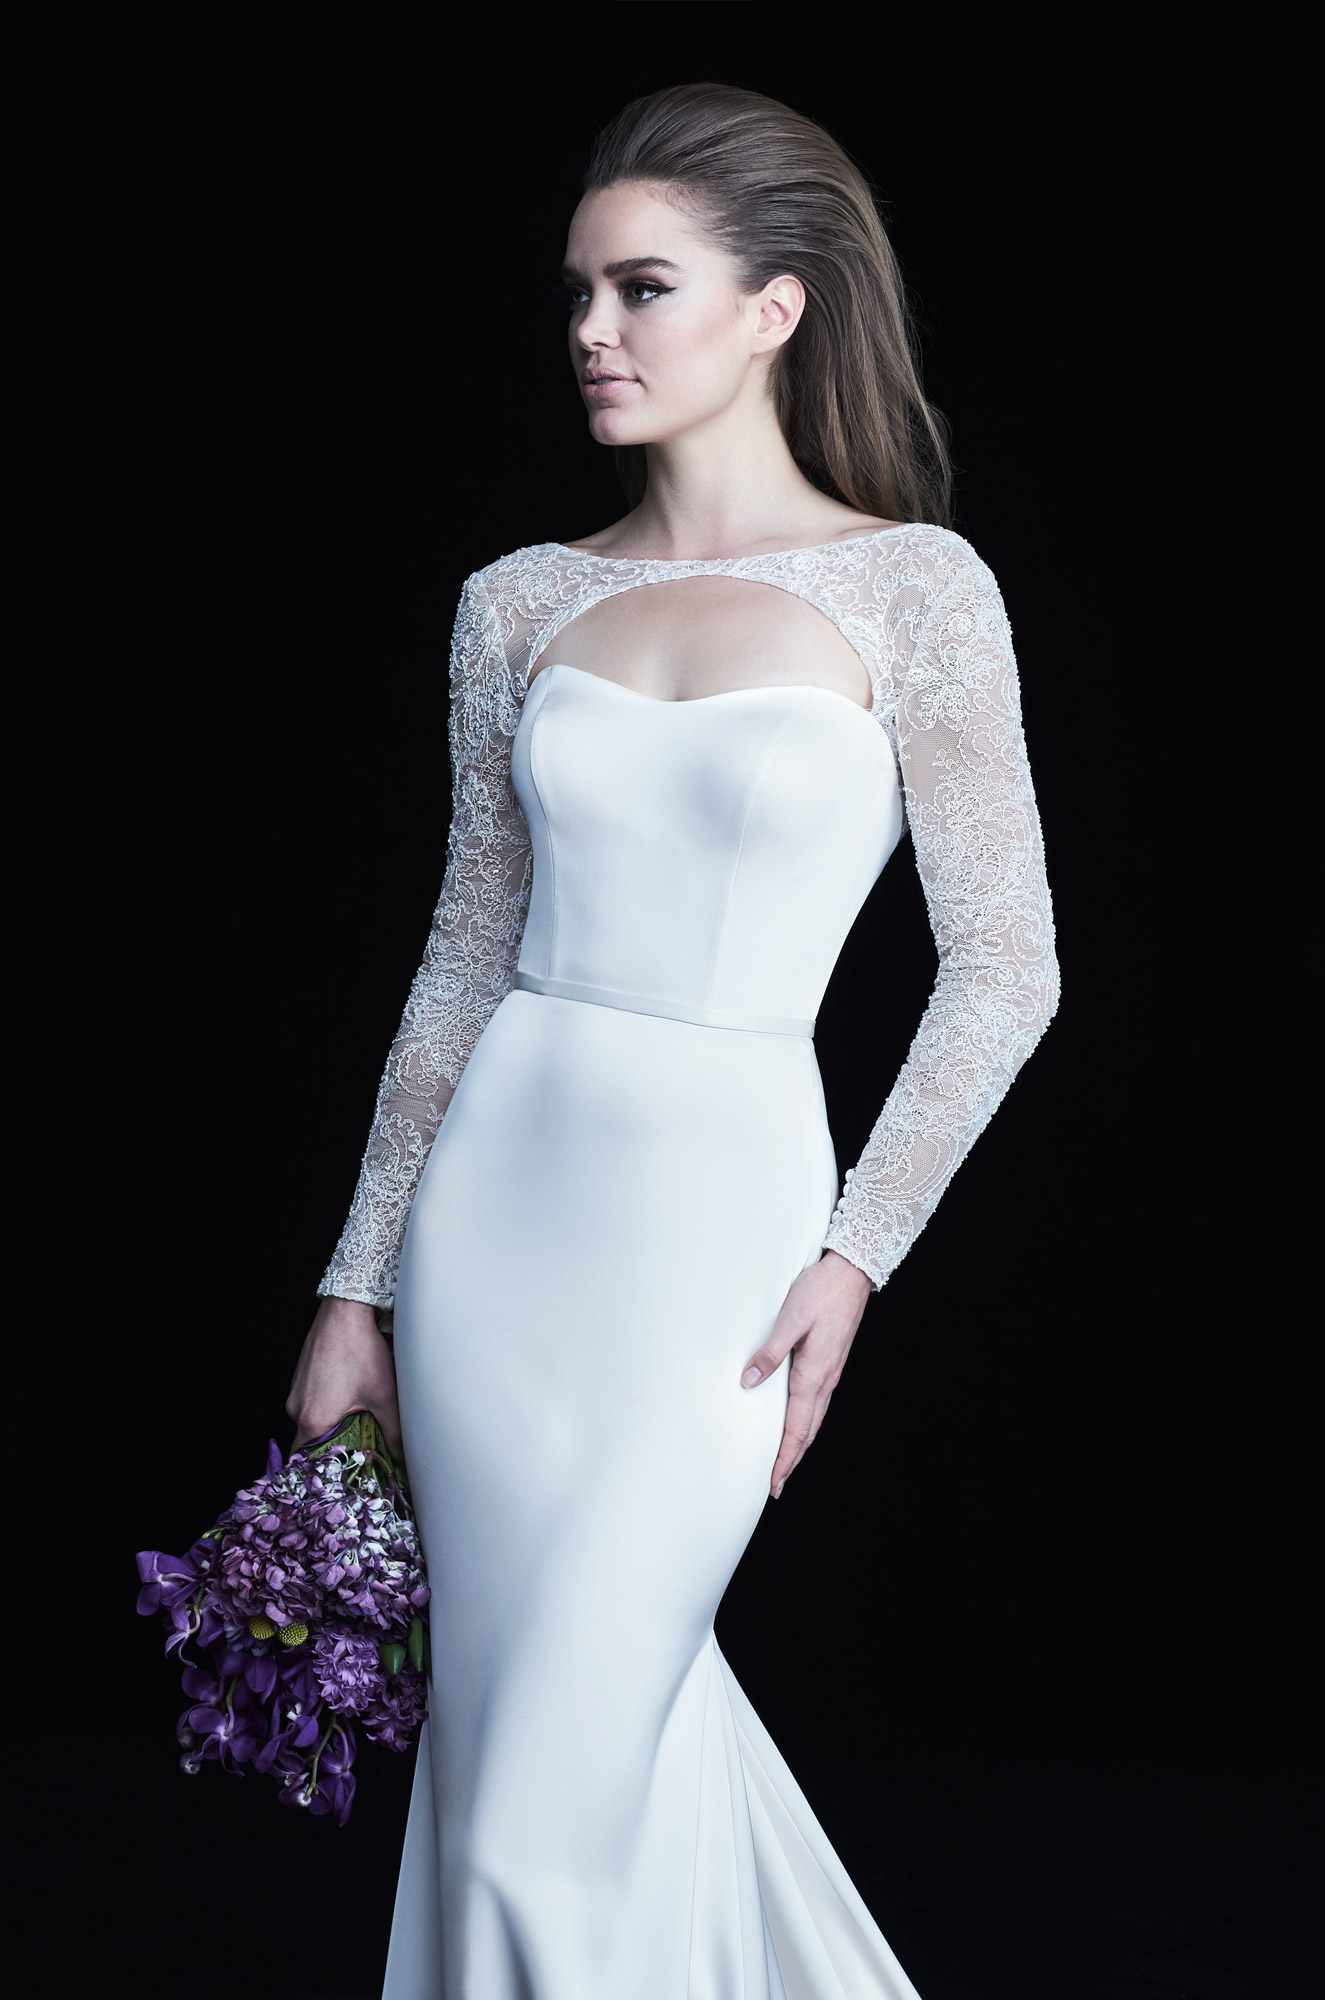 Long Sleeve Bolero Wedding Dress Style 4763 Paloma Blanca